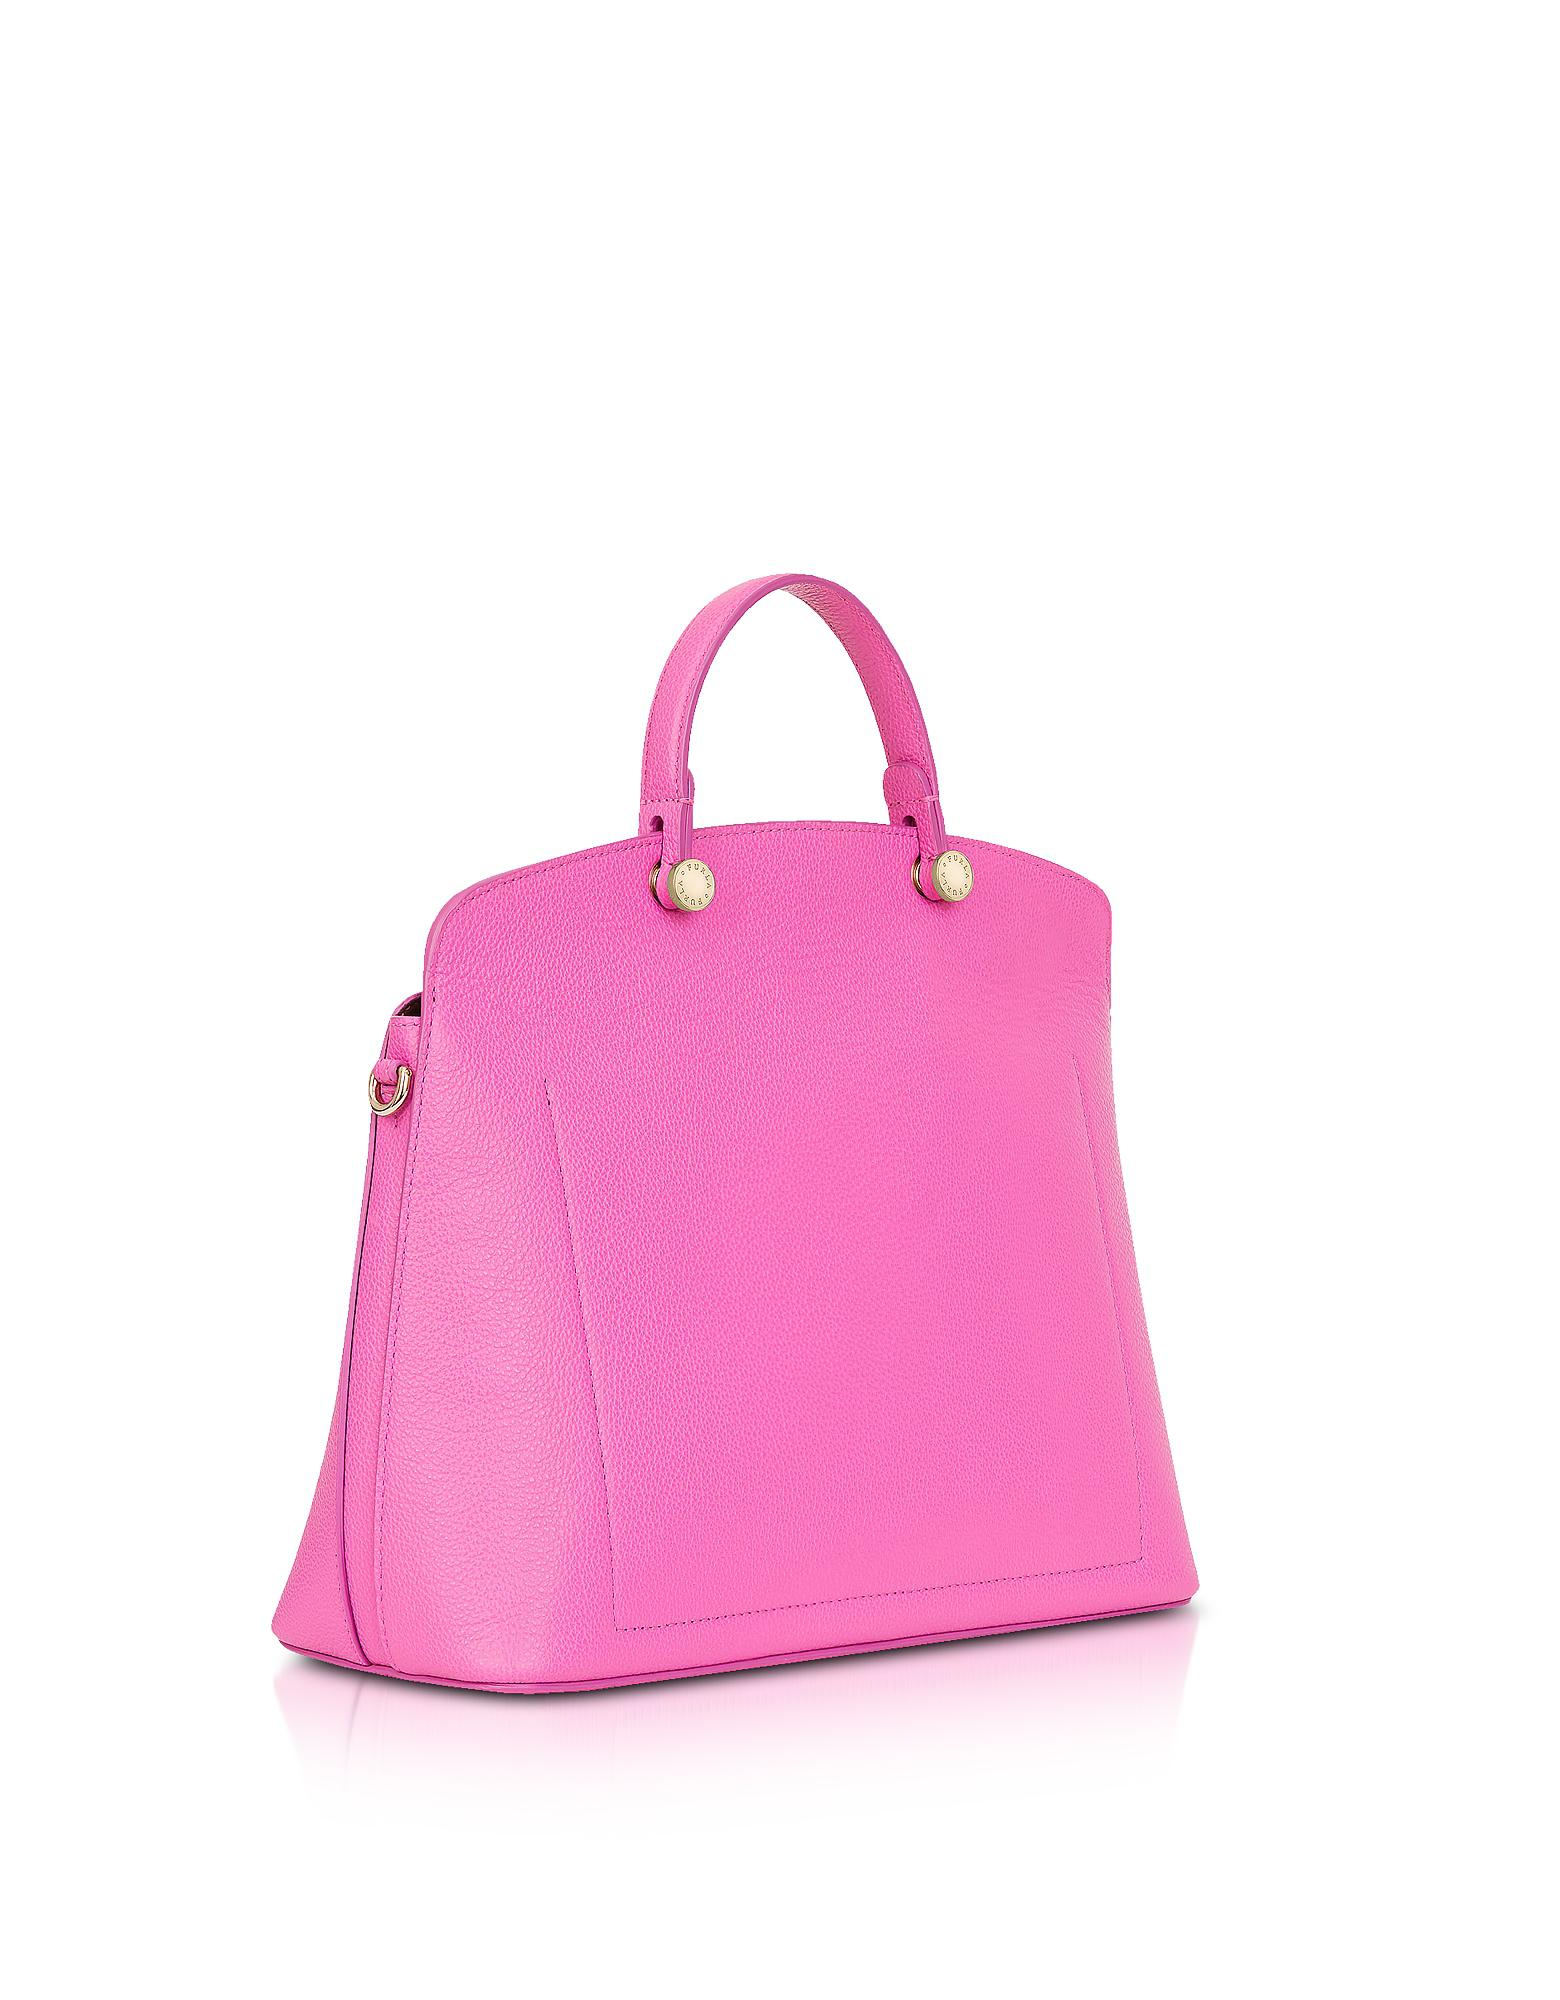 My Piper small top handle tote - Pink & Purple Furla Online Cheap Authentic 0lBVyBjYR